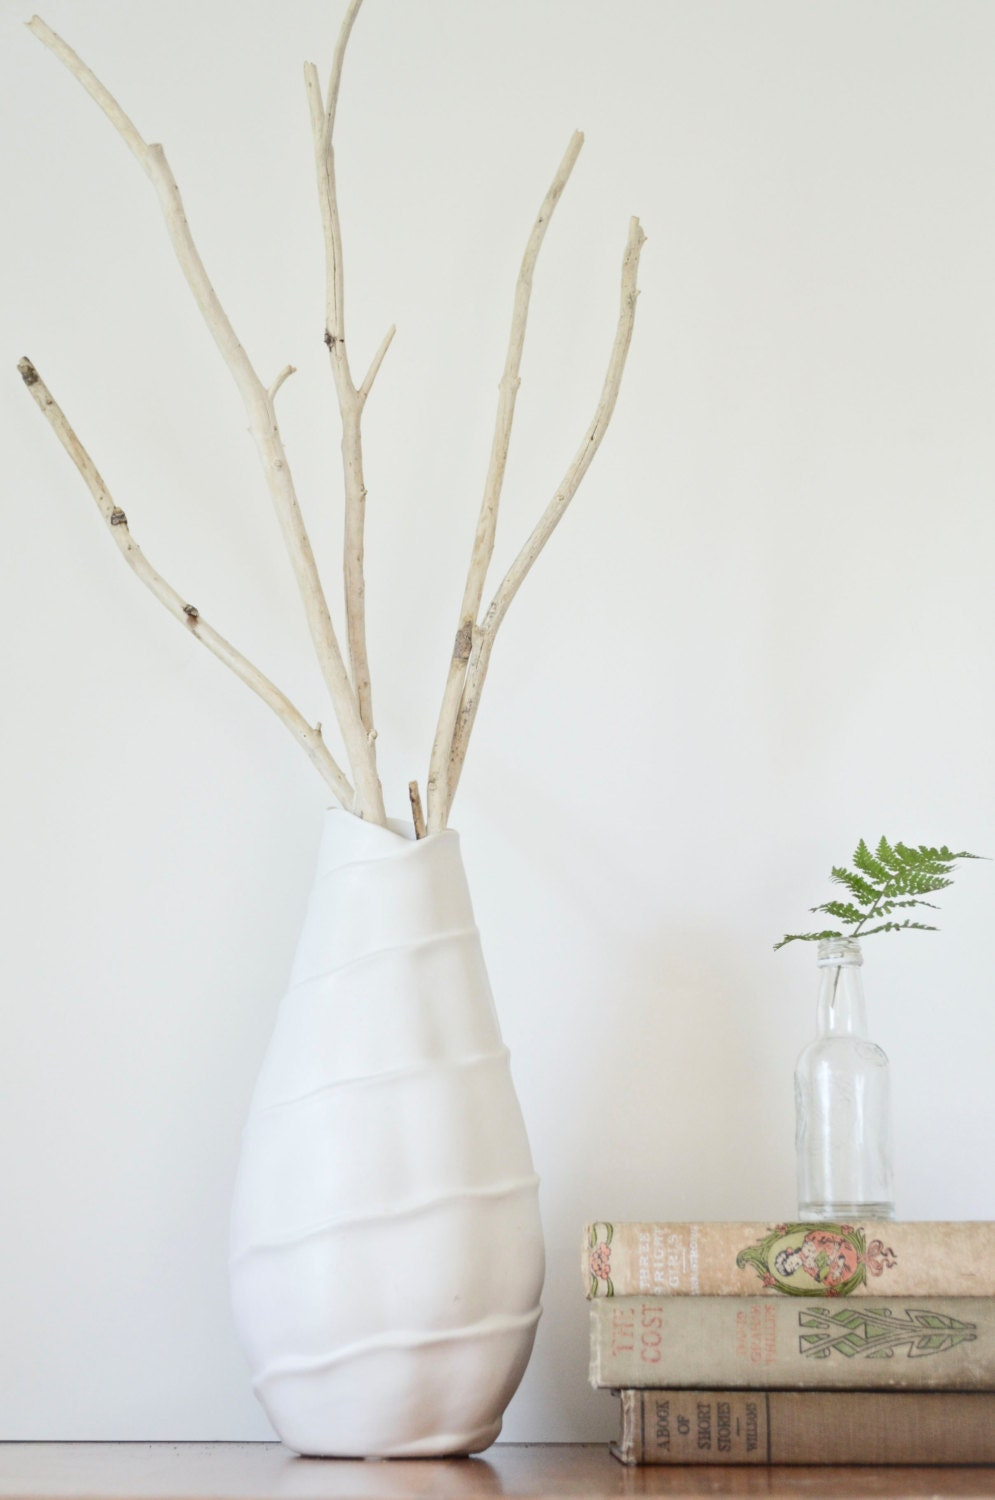 items similar to natural branches sticks twigs vase. Black Bedroom Furniture Sets. Home Design Ideas